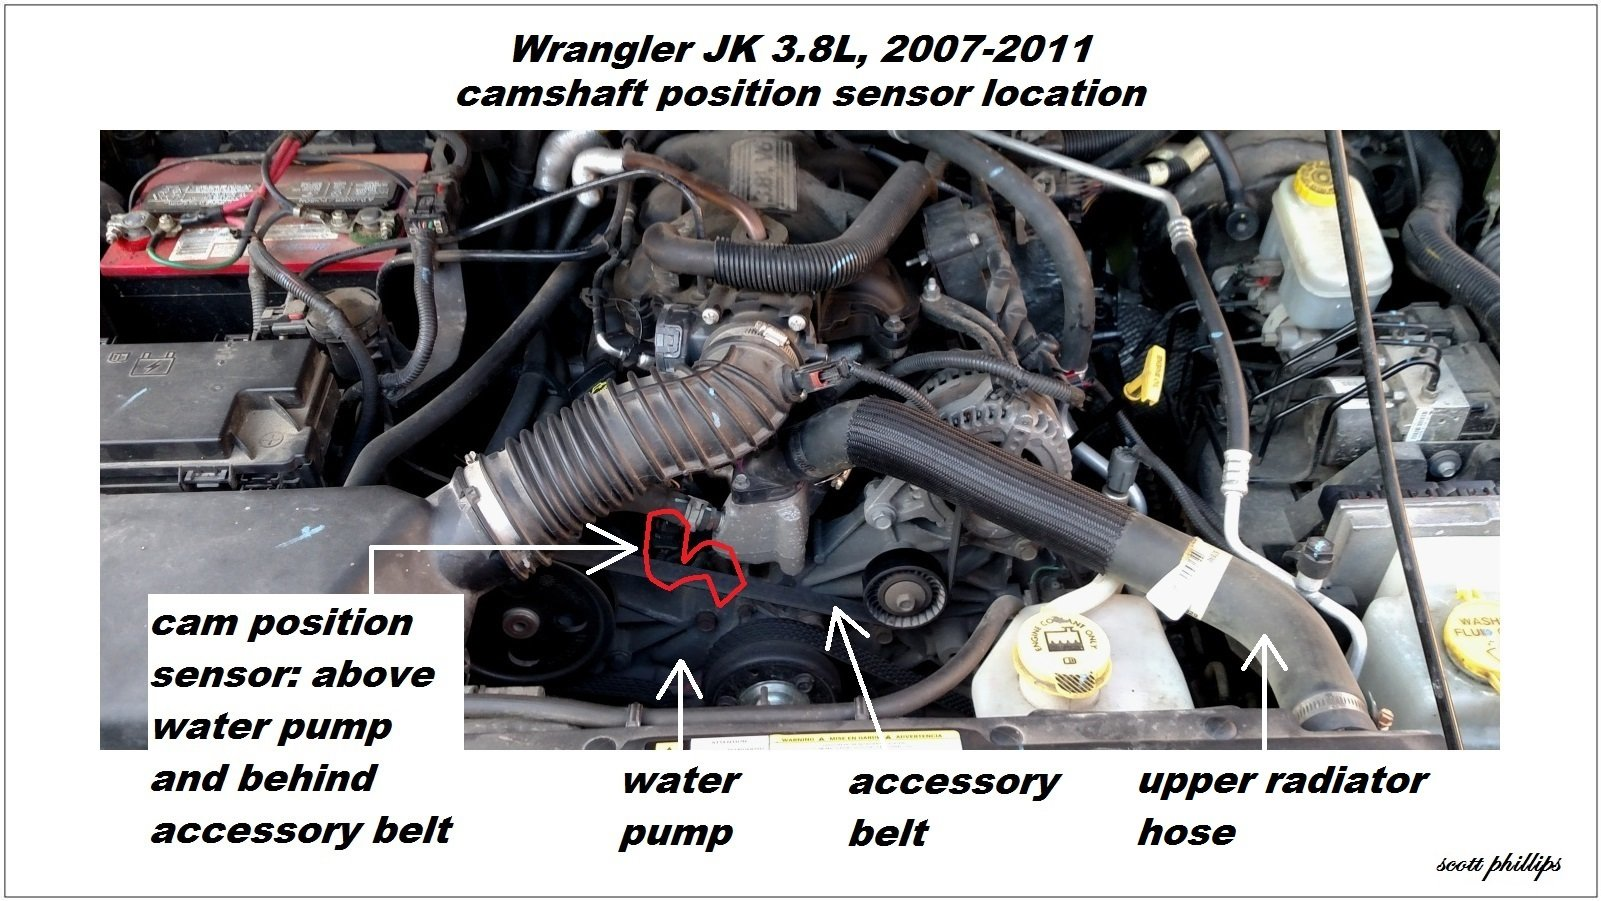 2011 jeep wrangler engine diagram example electrical wiring diagram u2022  rh 162 212 157 63 2.5